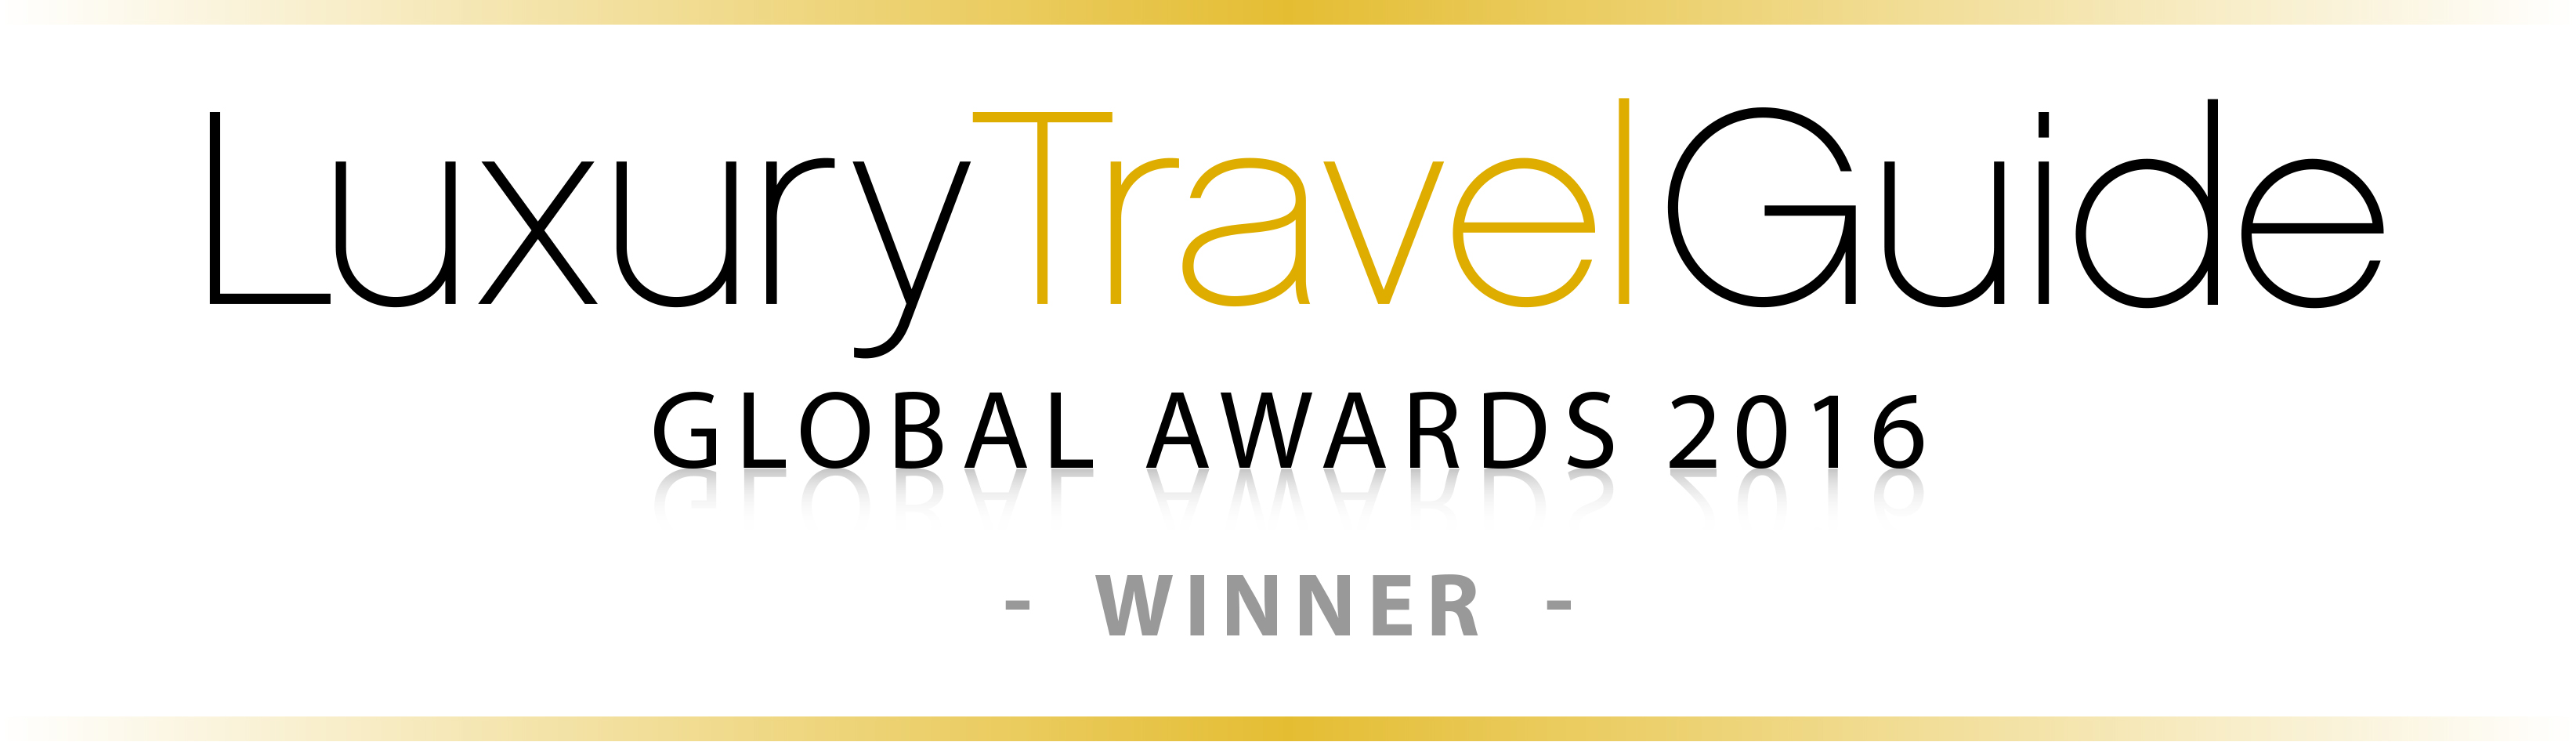 LUXURY TRAVEL GUIDE - WINNER 2016